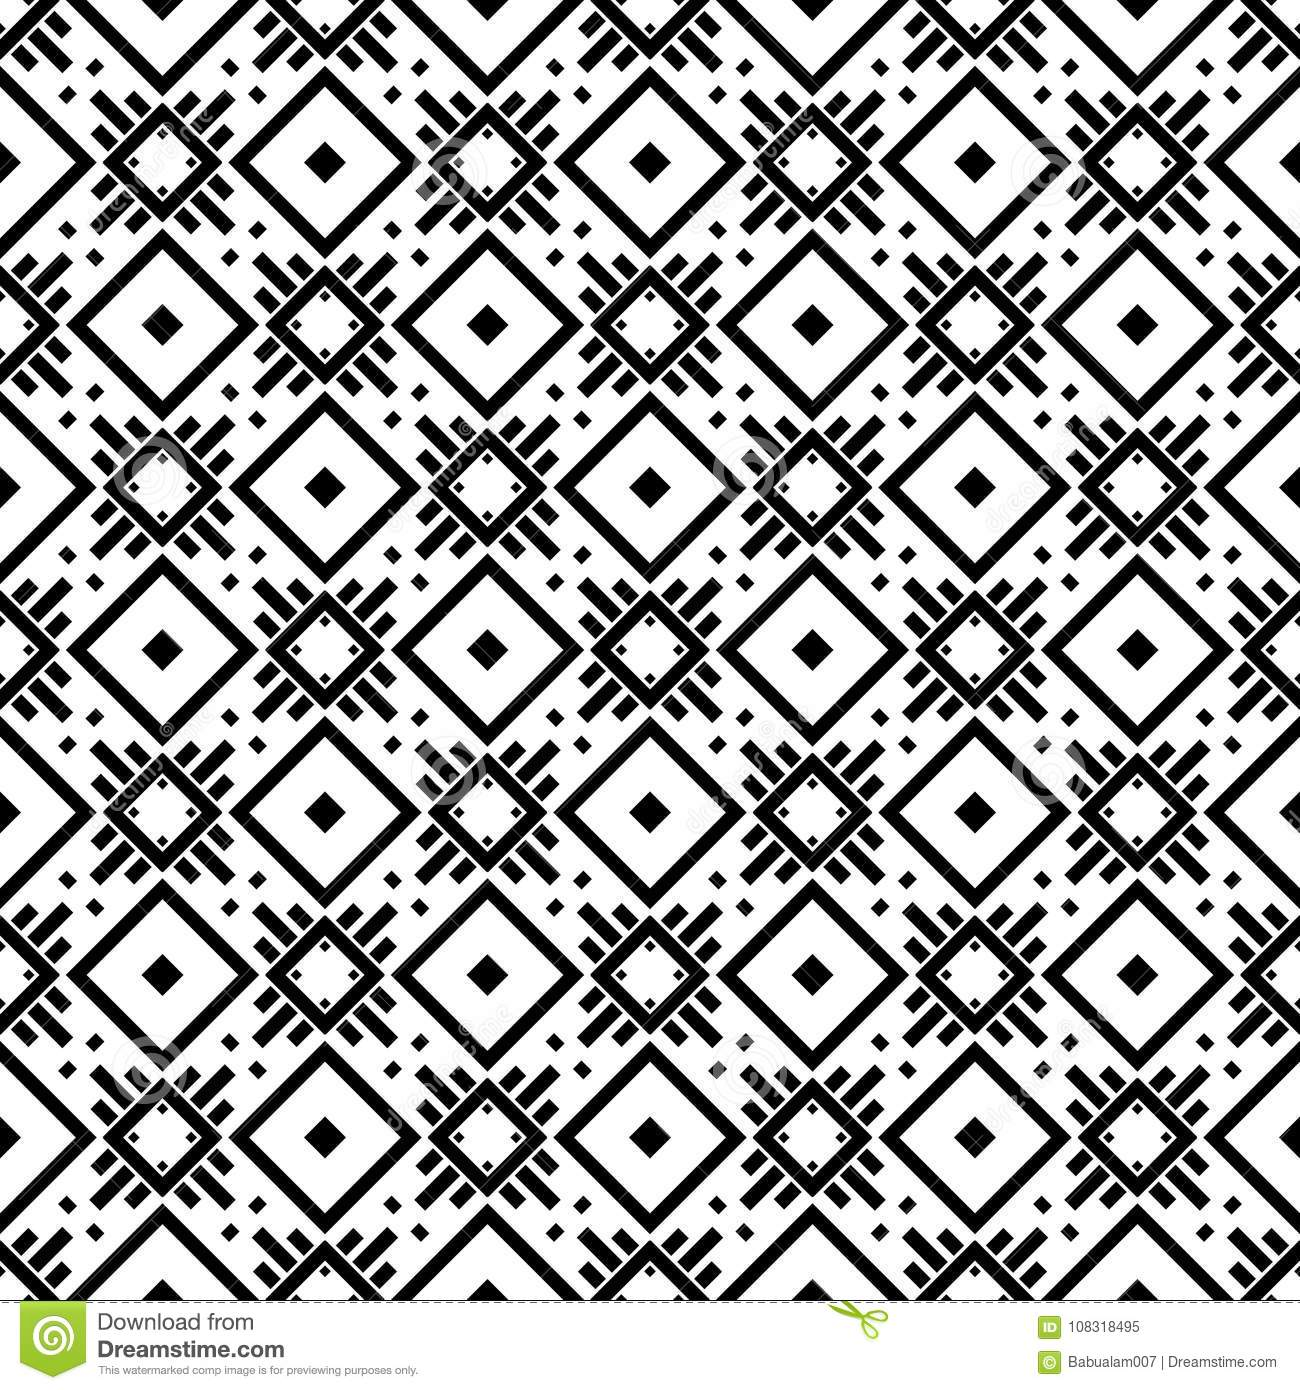 Great Wallpaper Home Screen Black And White - background-wallpaper-screen-sever-book-cover-screen-printing-laser-cutting-designs-vector-black-white-pattern-design-dot-geometric-108318495  Collection_182652.jpg